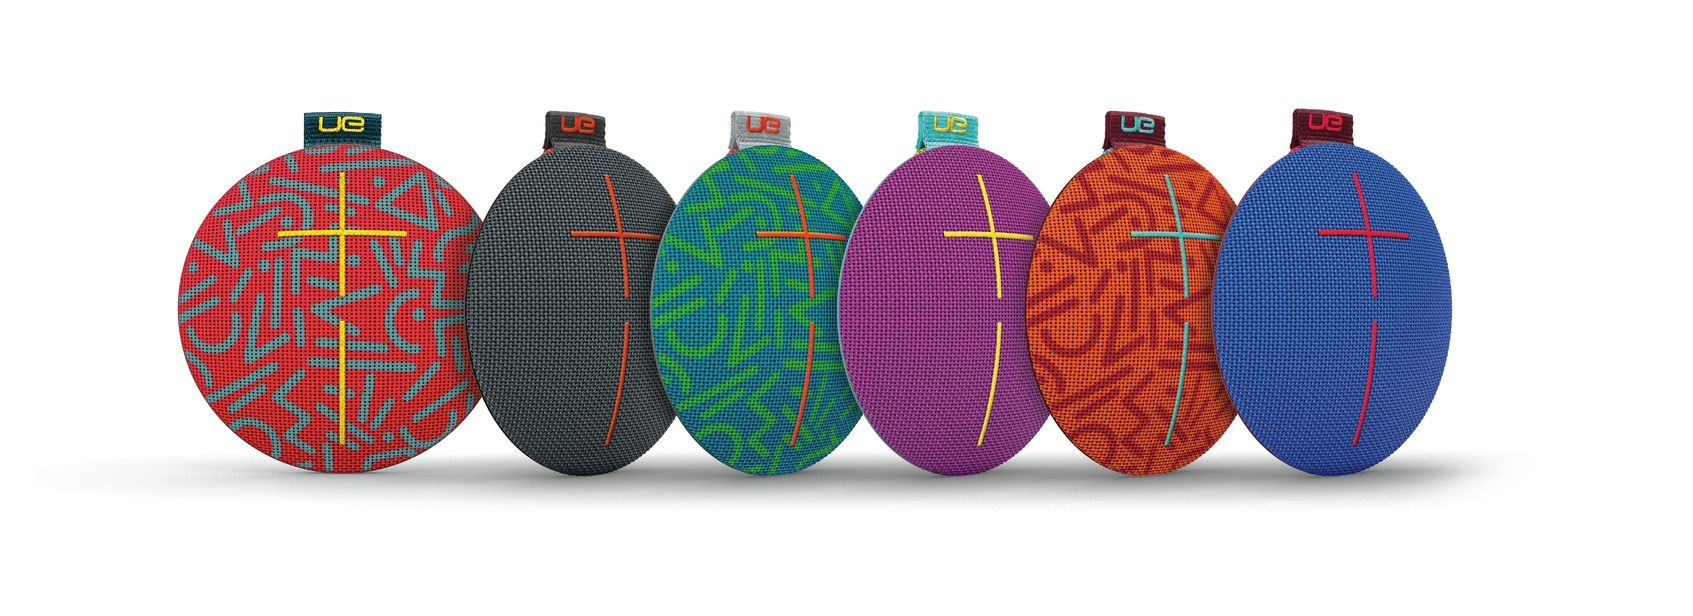 Support for UE MEGABOOM, UE BOOM 2, and UE ROLL 2 wireless speakers.